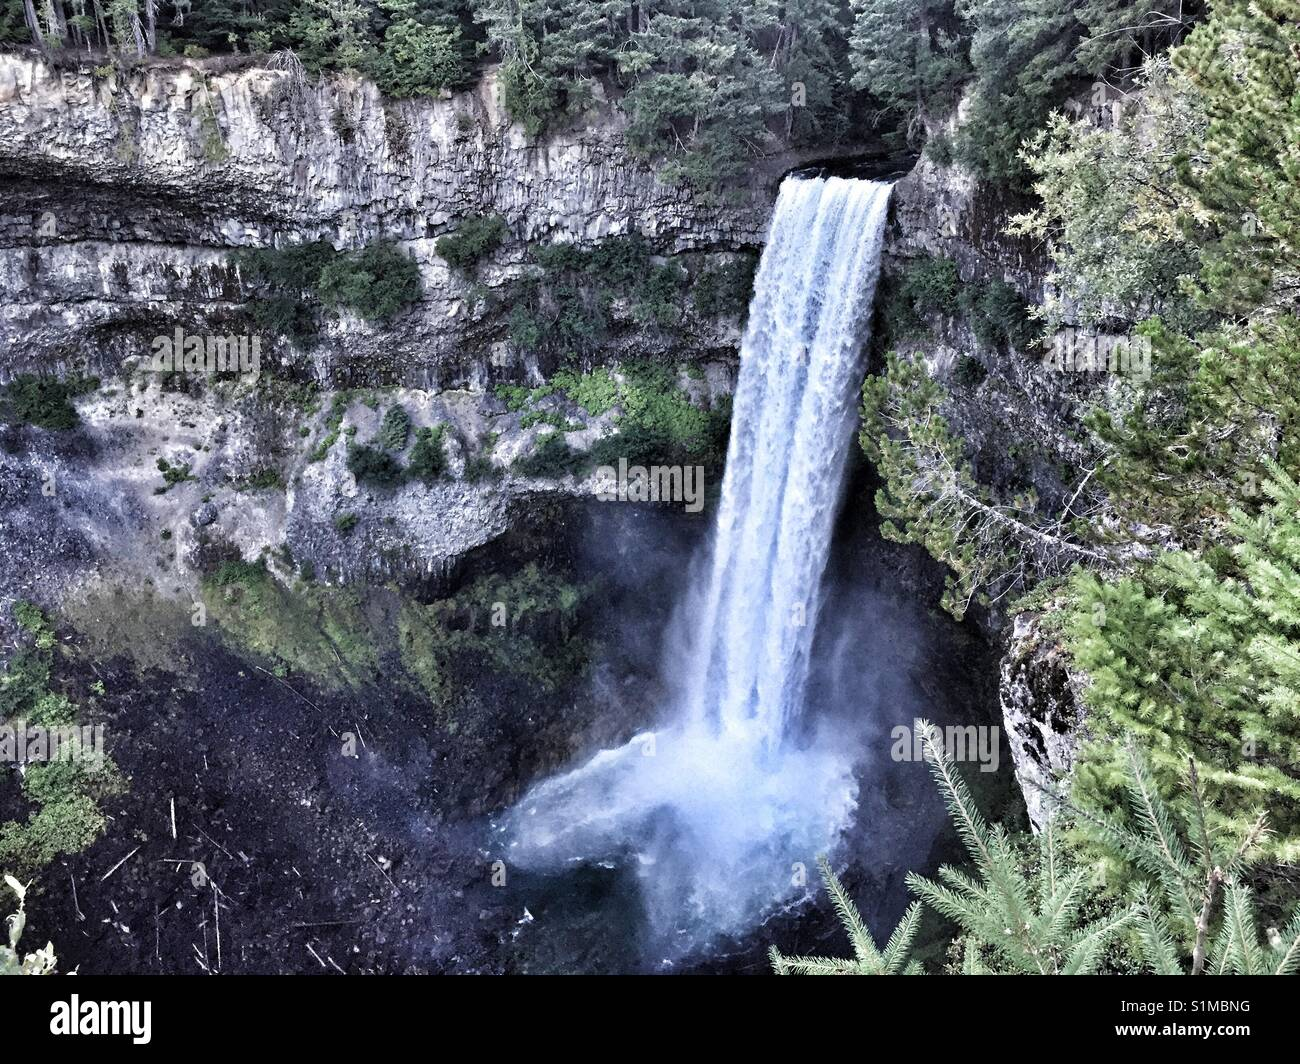 Brandywine Falls Park between Squamish and Whistler in British Columbia in Canada. Waterfall and canyon. - Stock Image